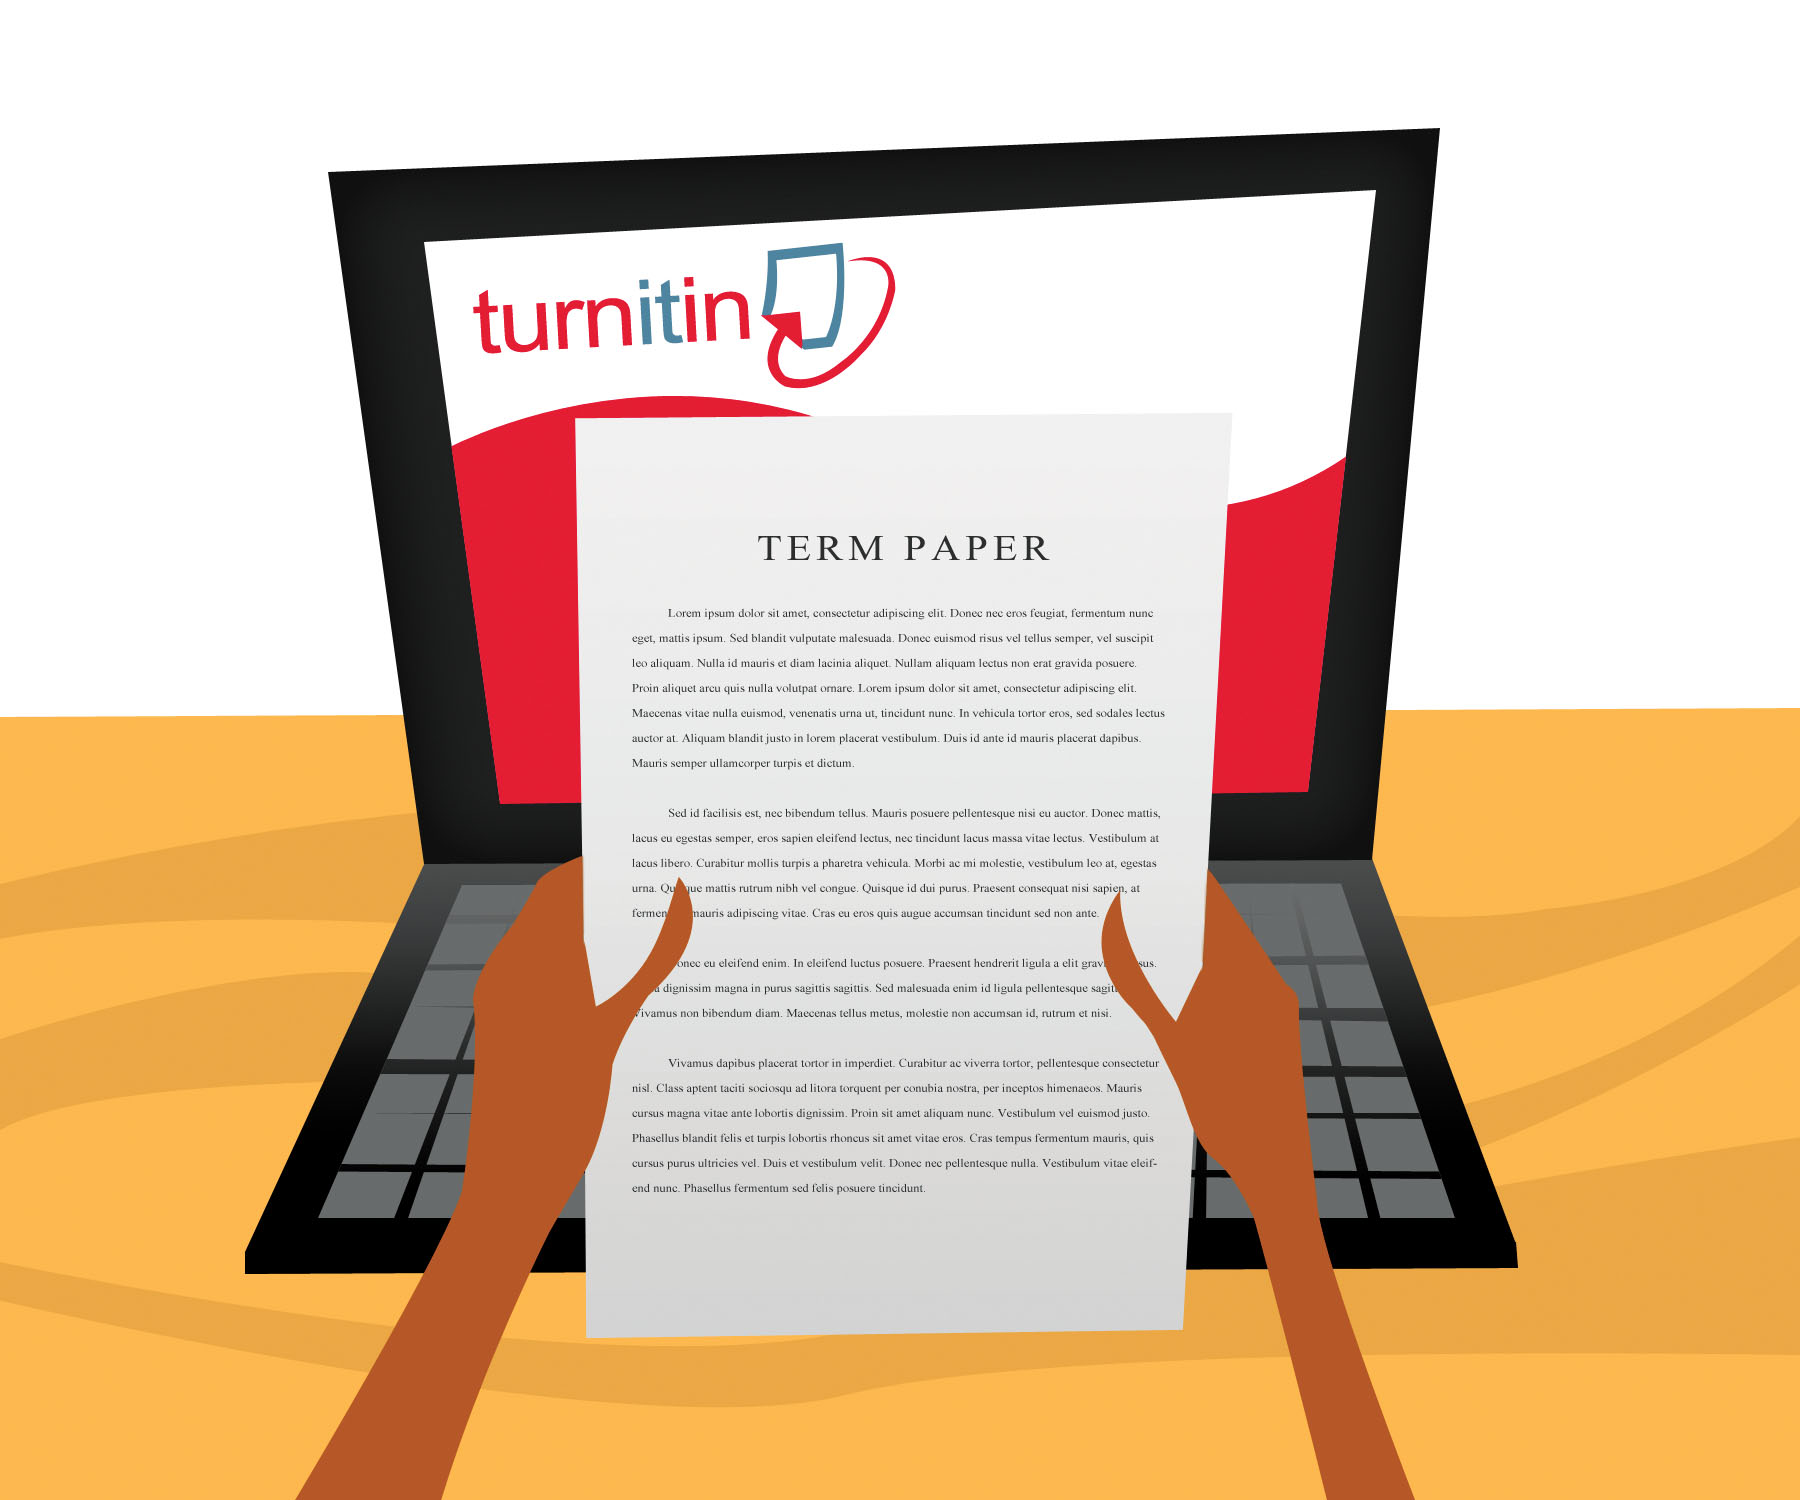 campus-turnitin-lena